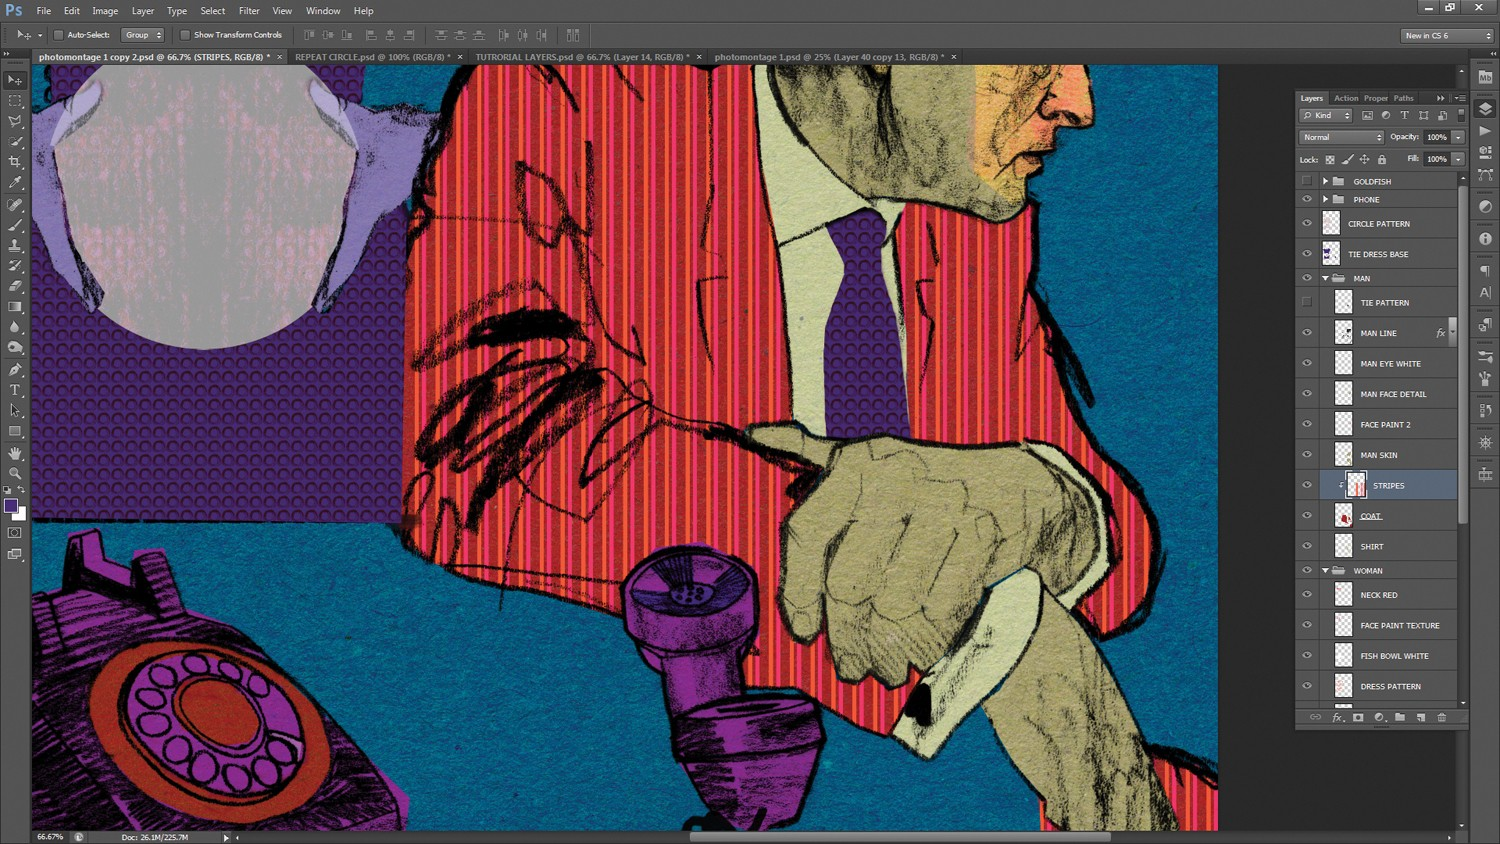 Photoshop tutorial: How to add texture to hand-drawn